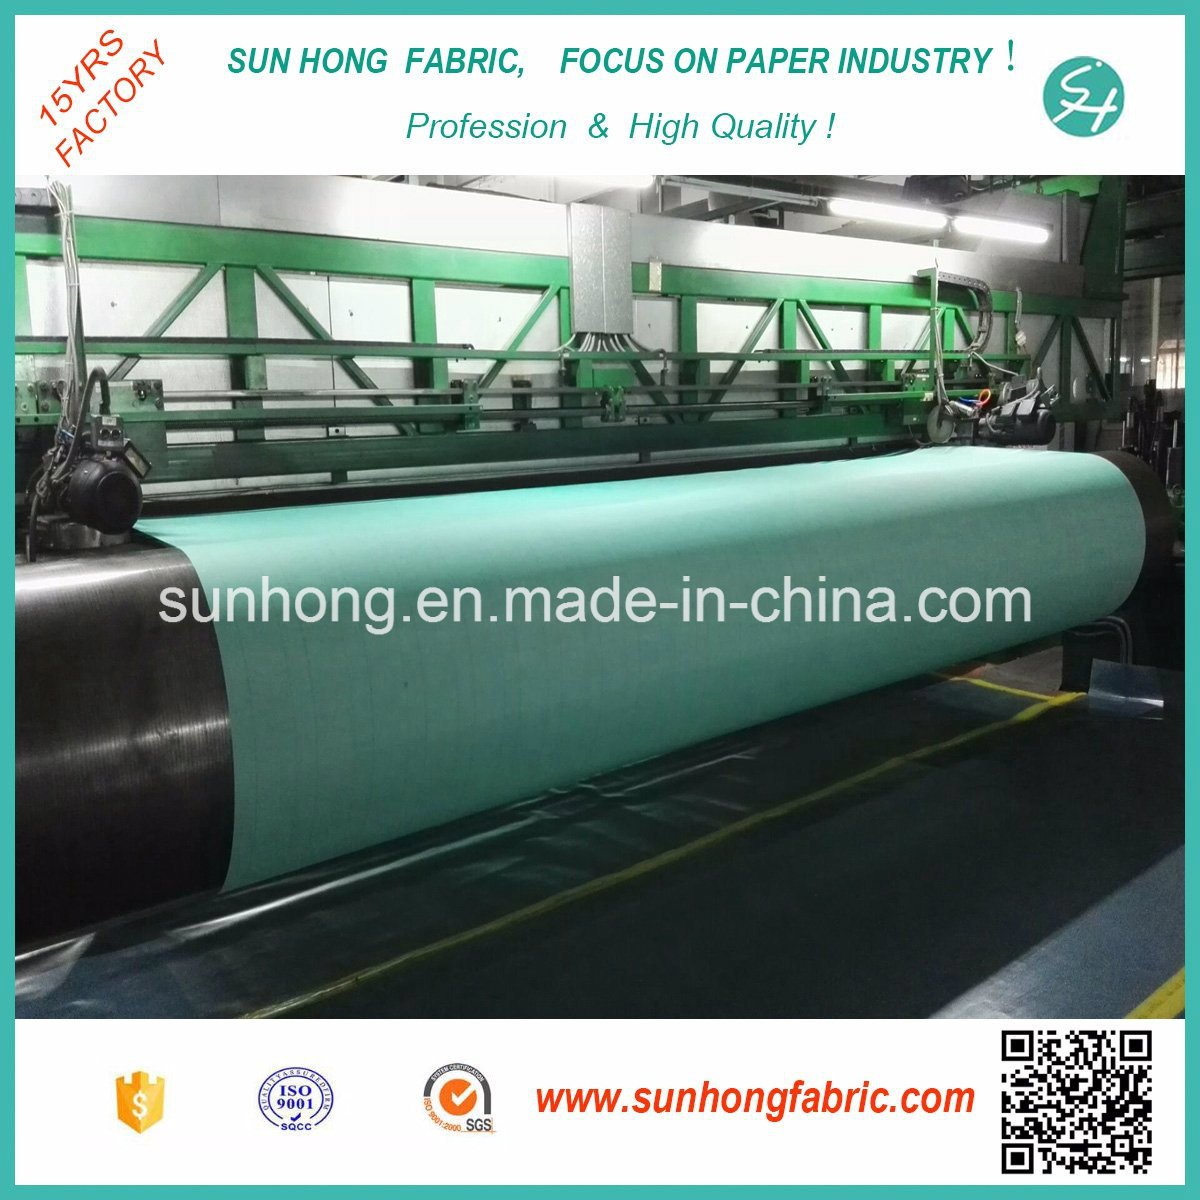 Polyester Forming Fabric for Paper Making Machine